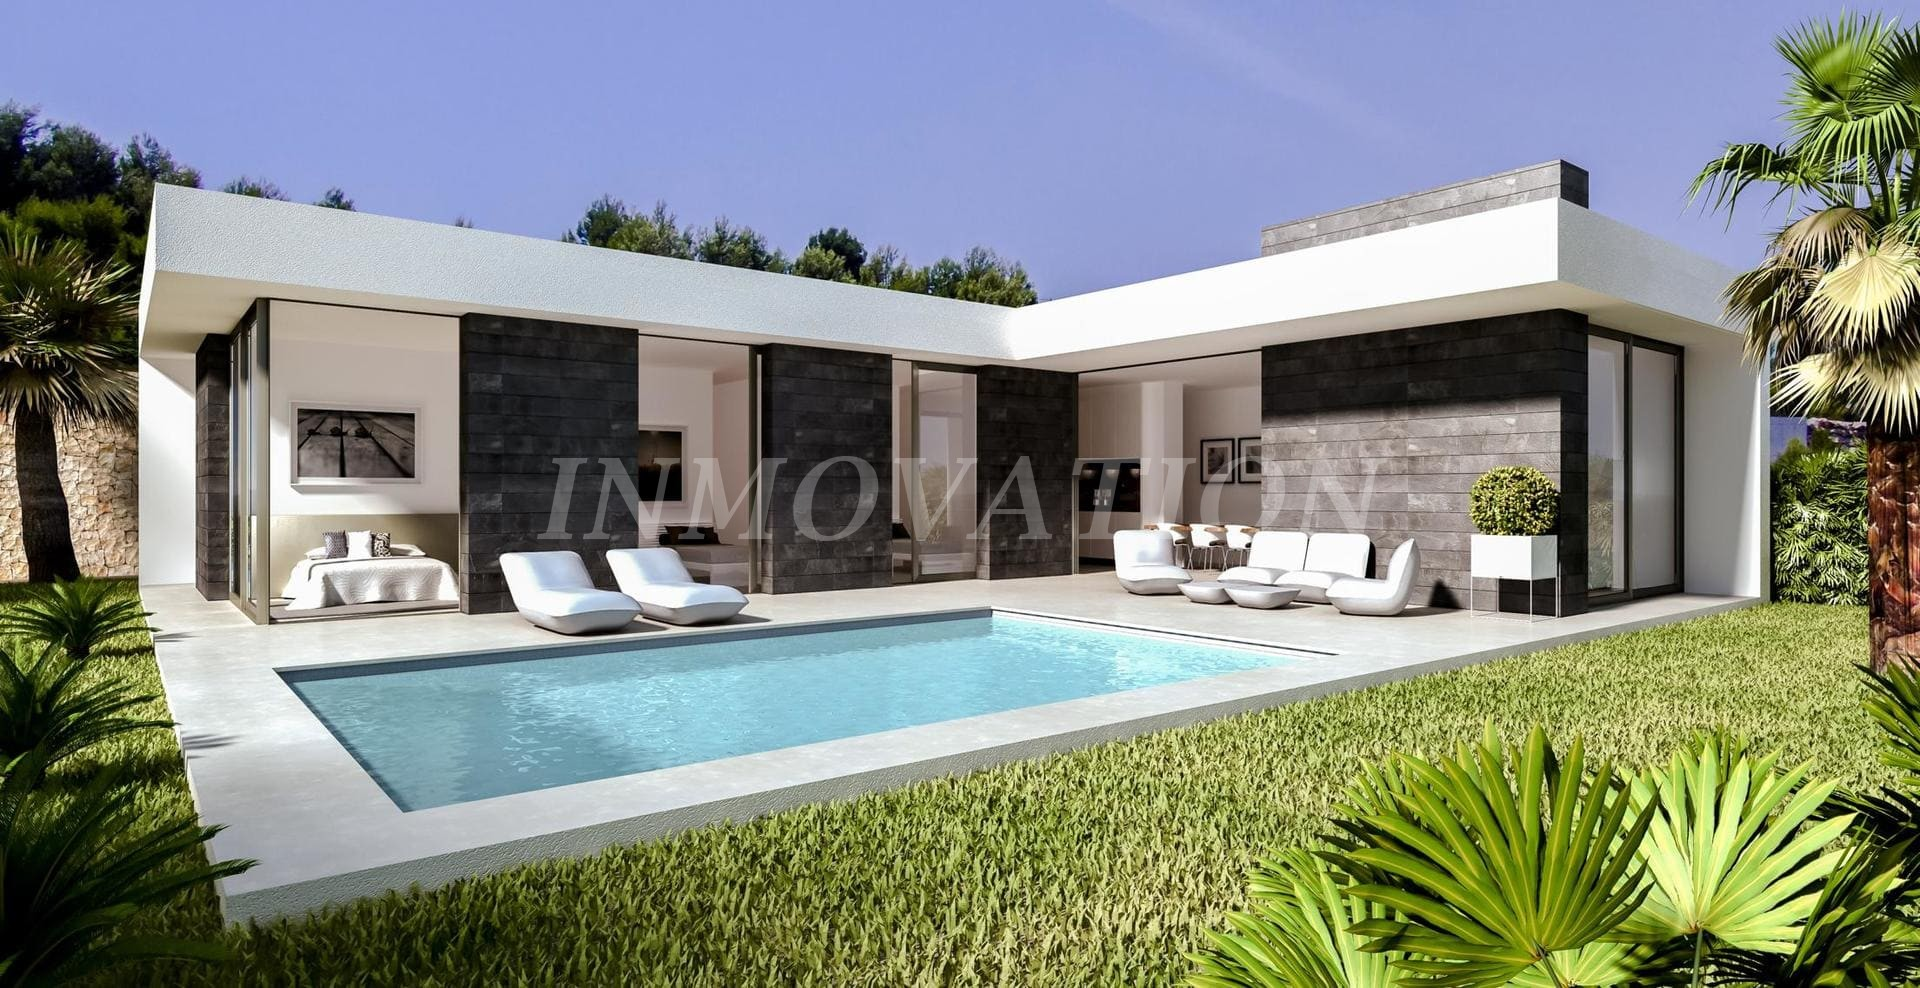 Contemporary Design Villa Project For Pedreguer